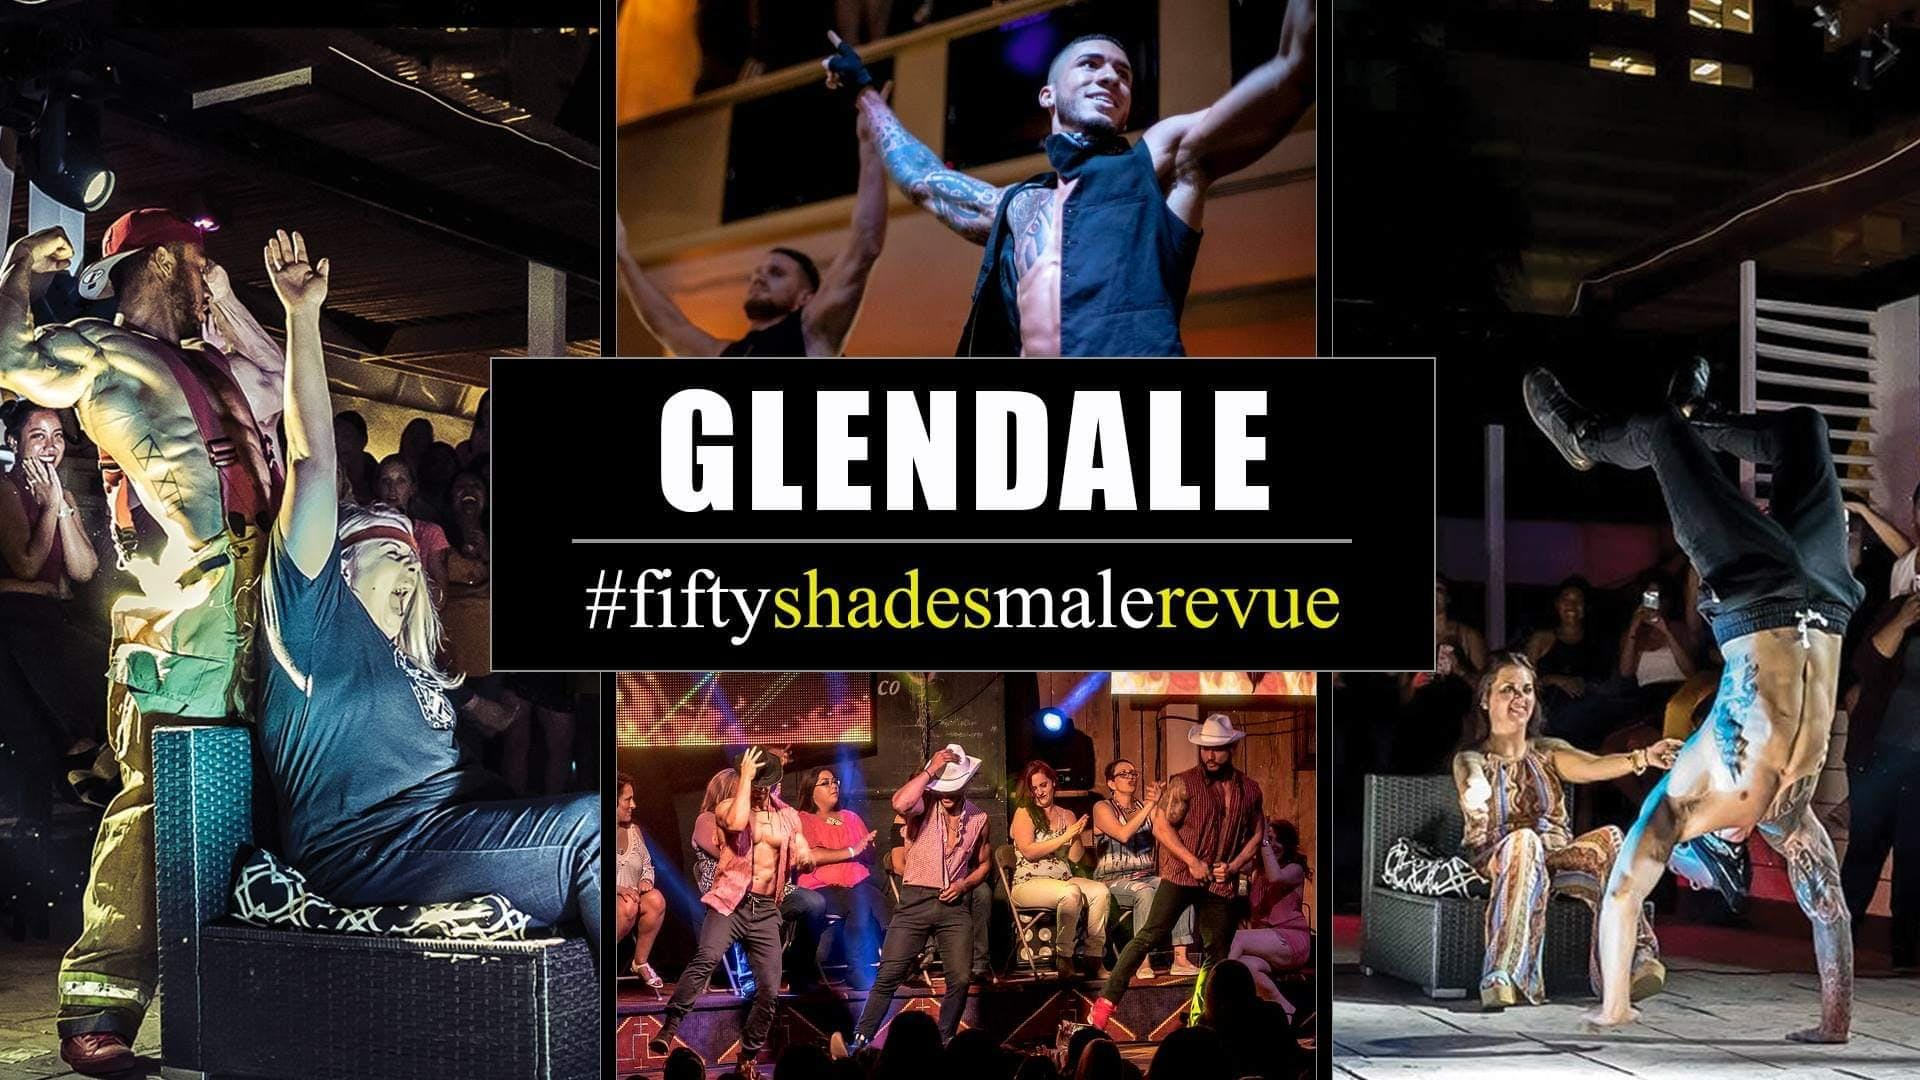 Fifty Shades Male Revue Glendale